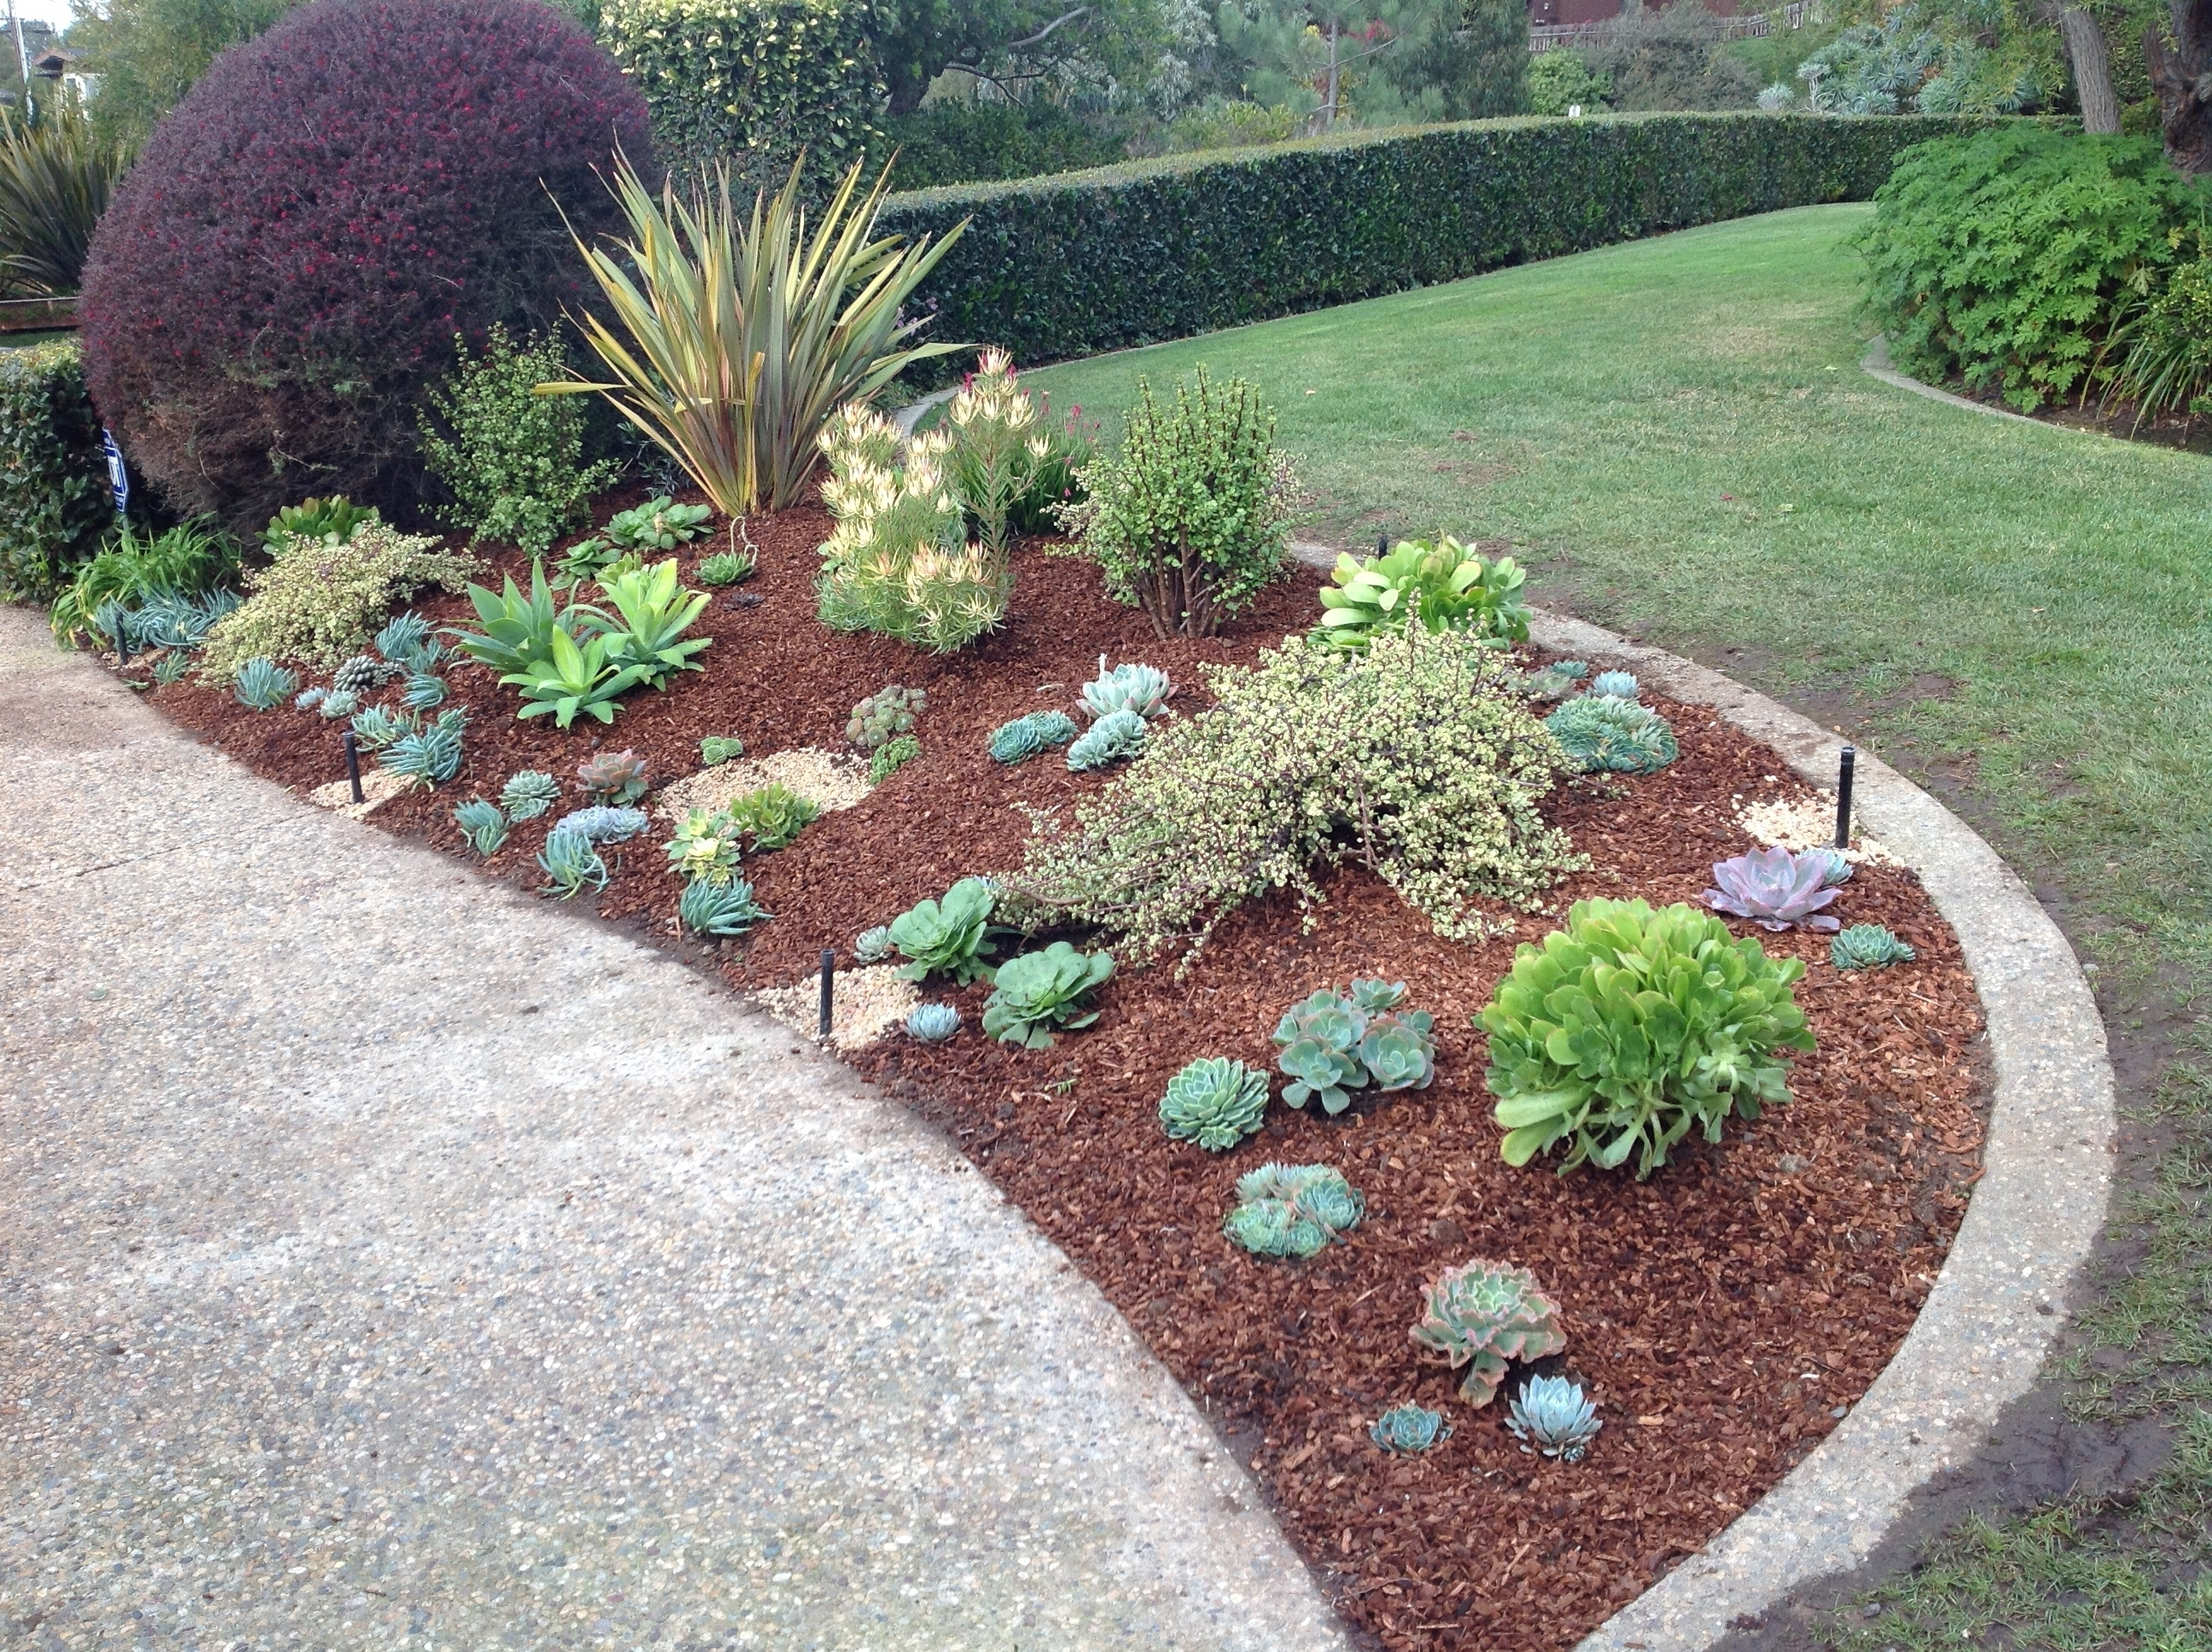 Landscaping Succulents Succulent Rock Garden With Pictures Designs Regarding Landscaping With Succulents Landscaping With Succulents Plant Ideas